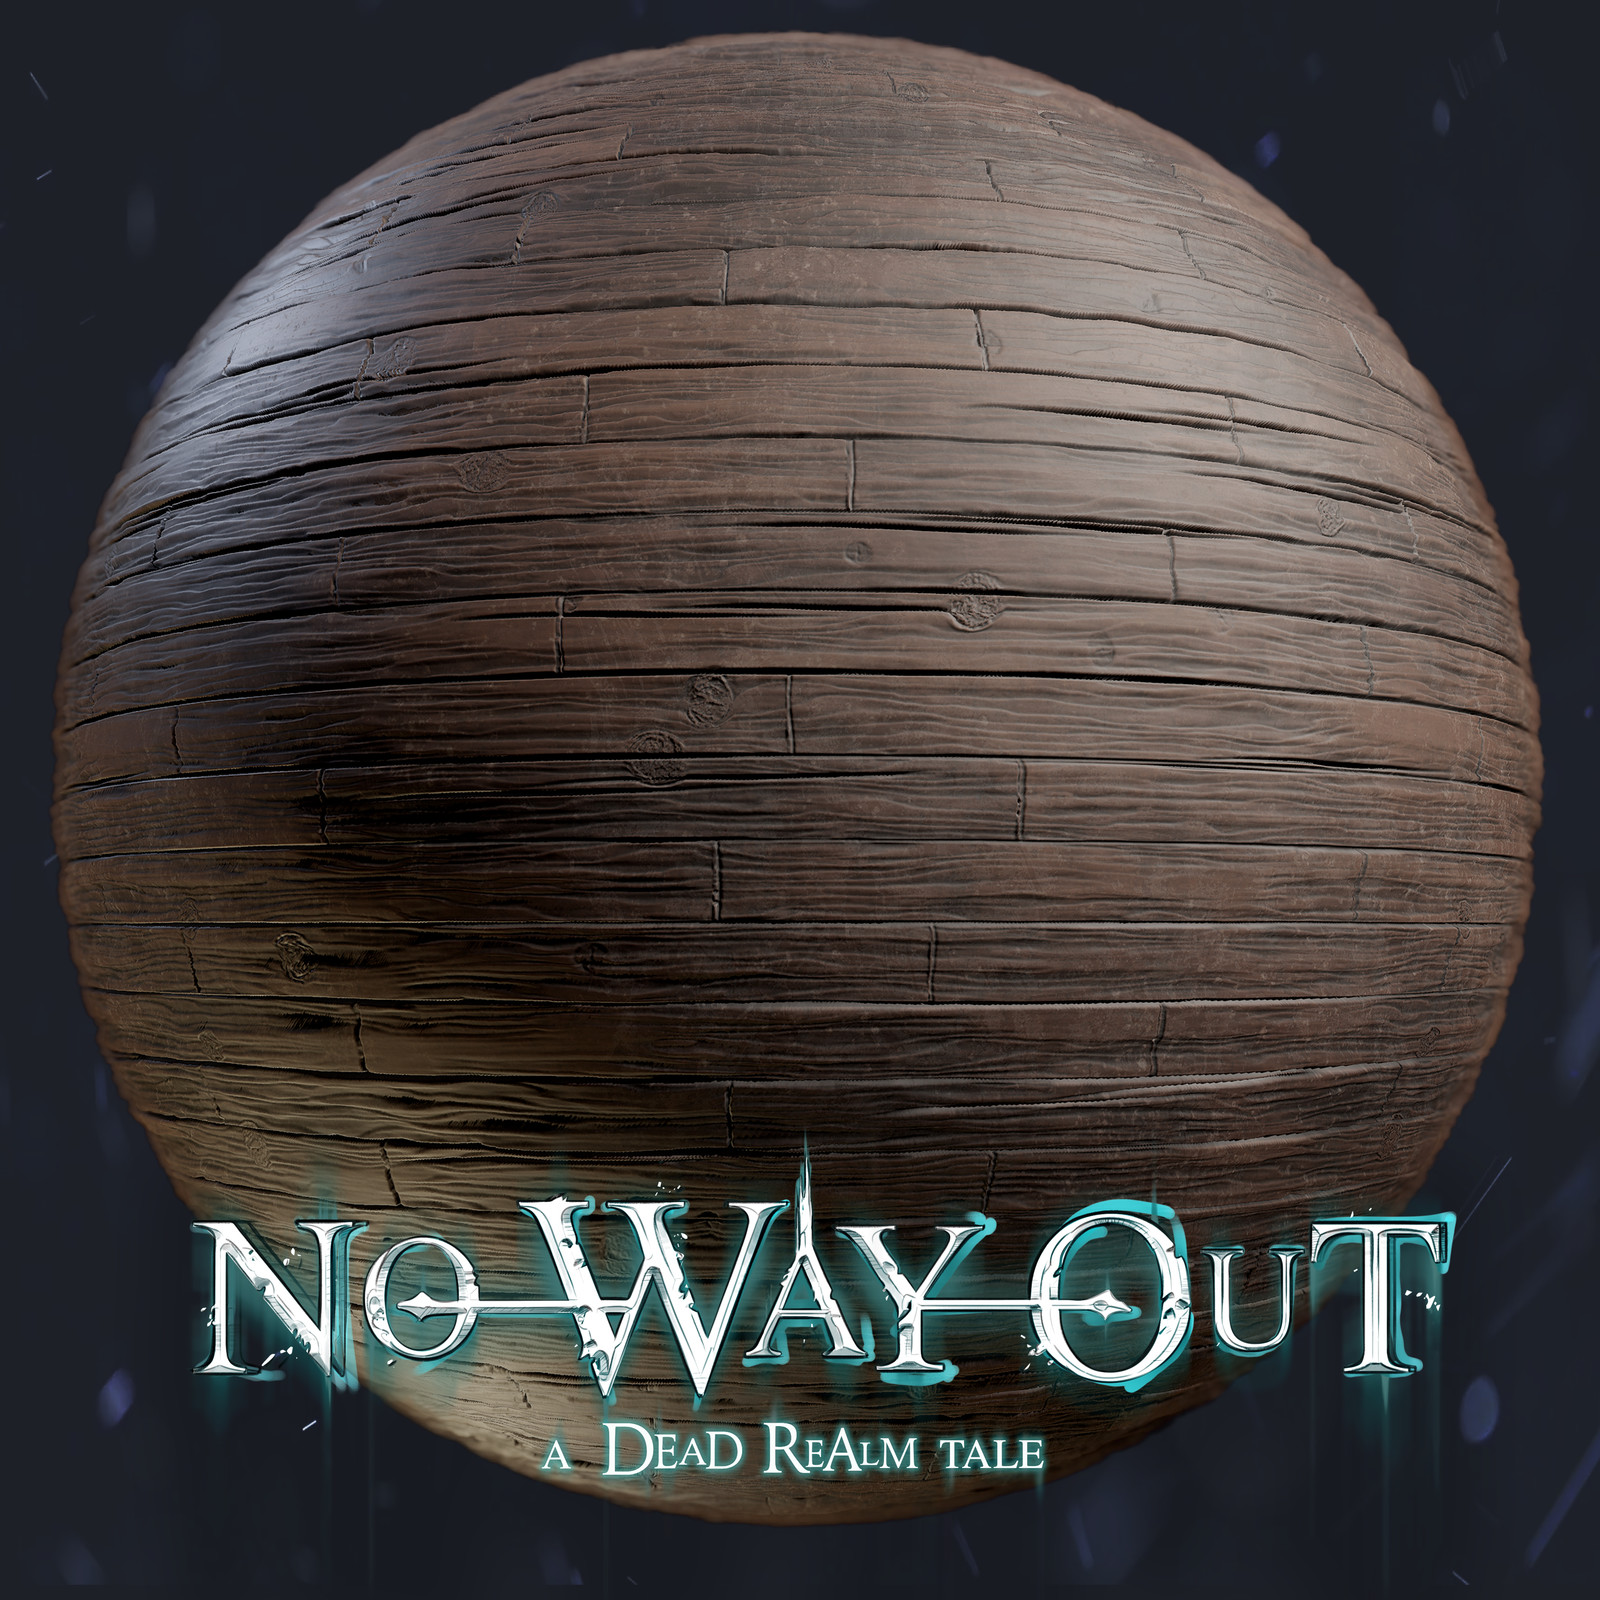 No Way Out - A Dead Realm Tale - Materials - Wood Plank Dead Realm